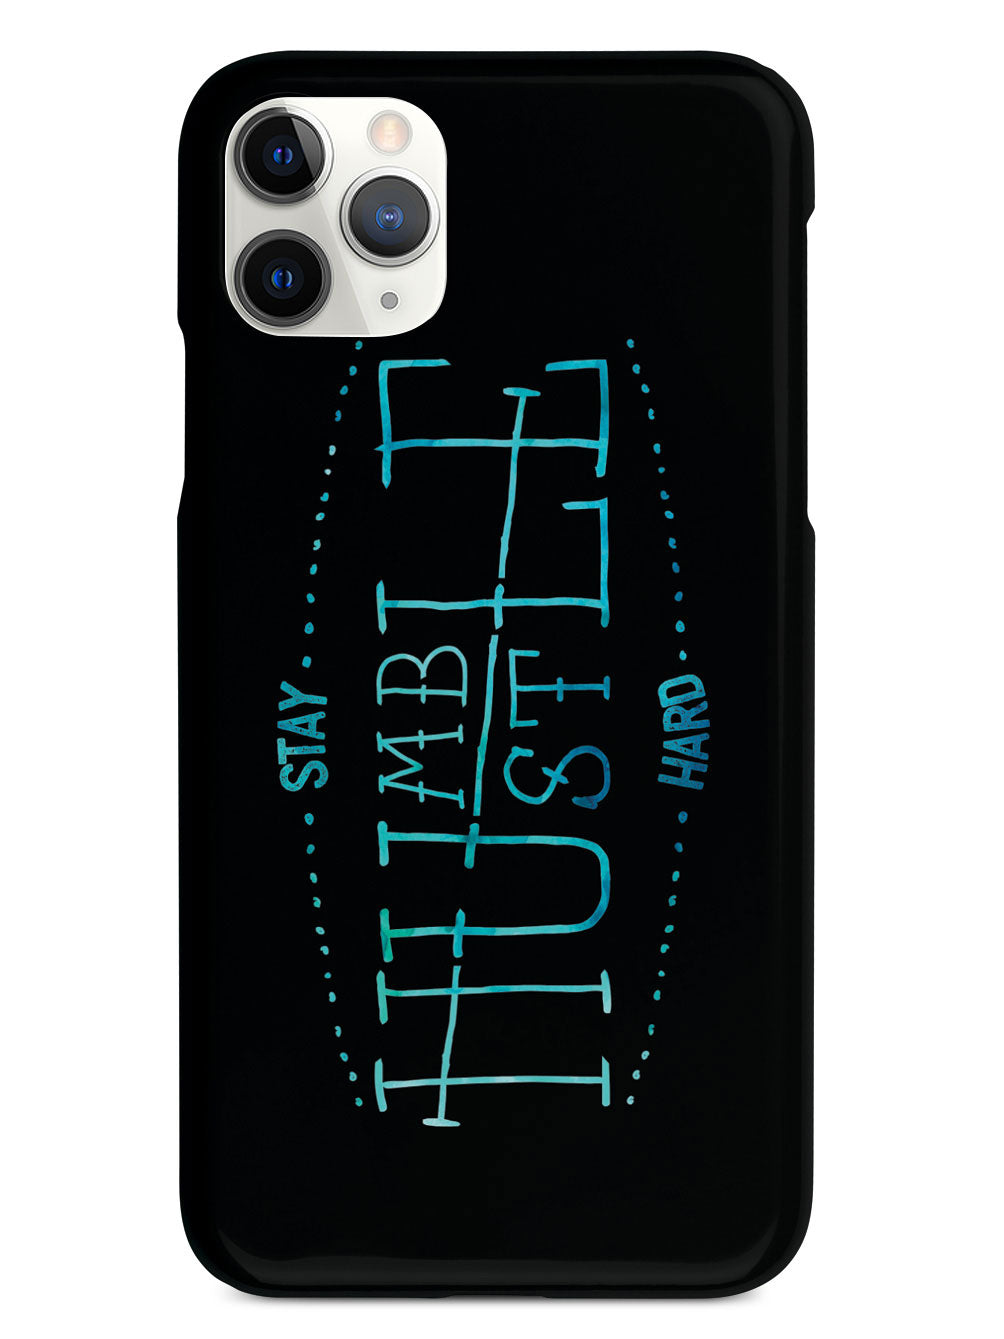 Stay Humble Hustle Hard Case